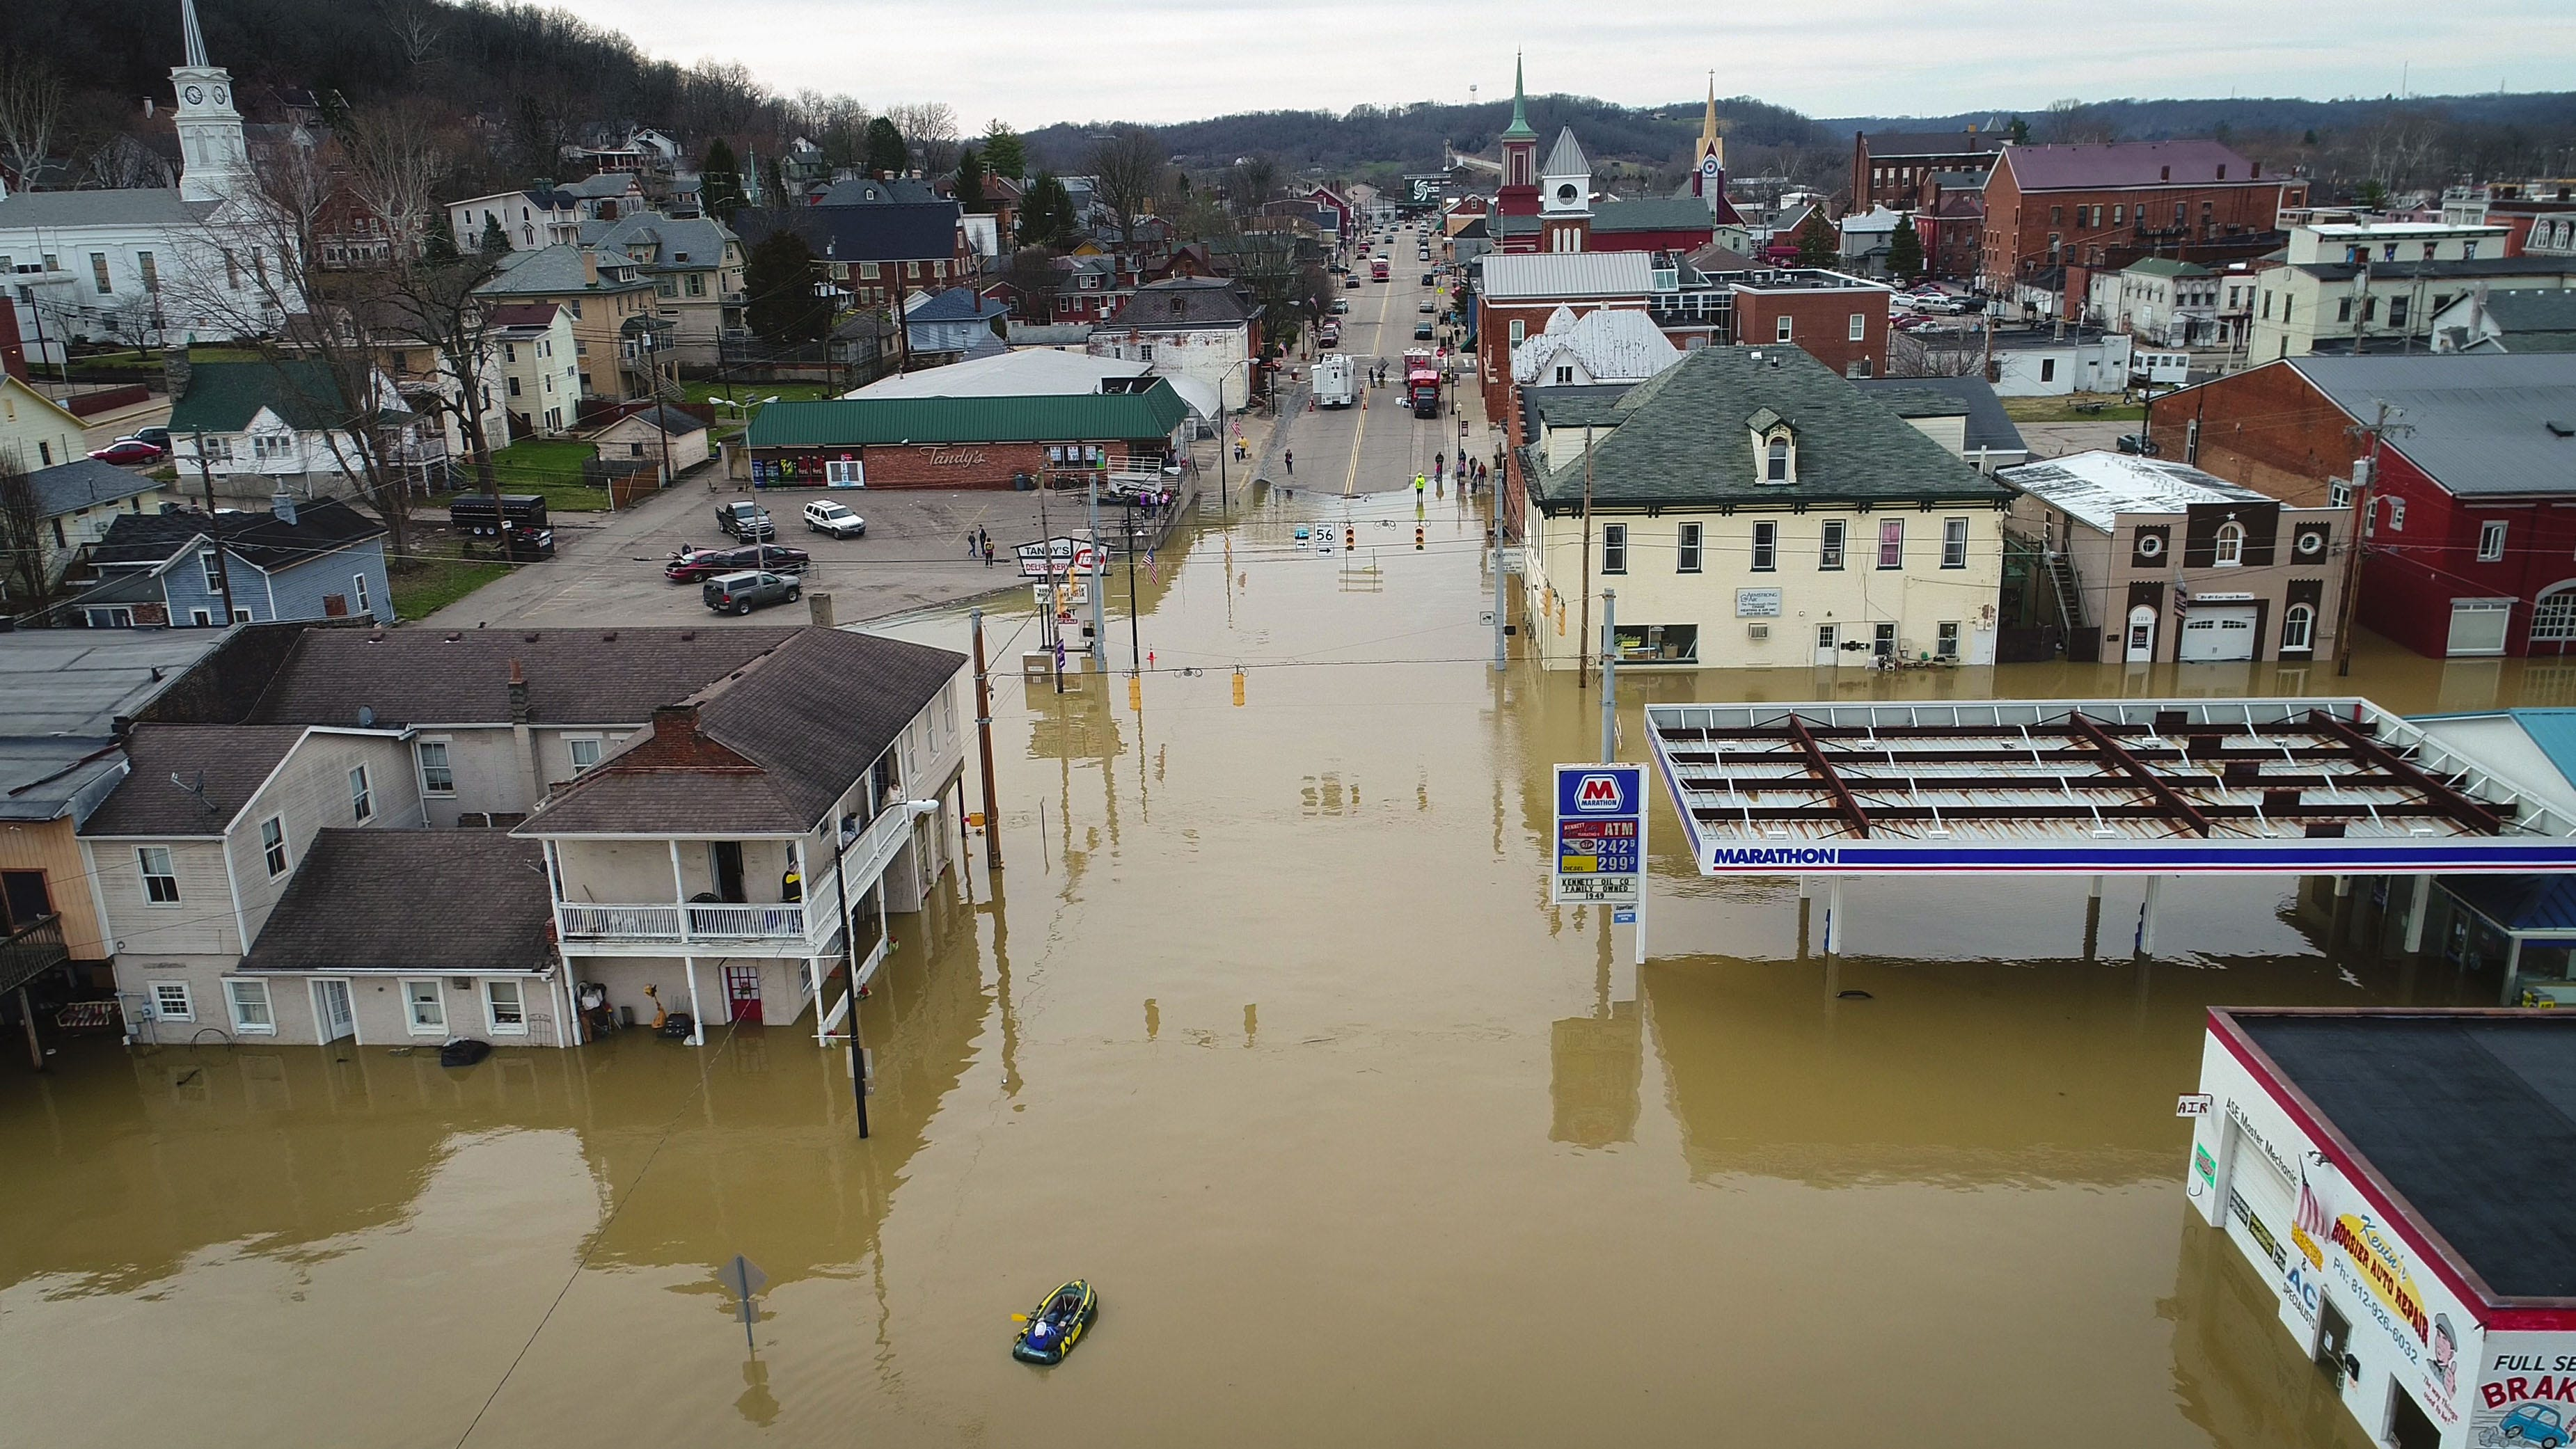 The Ohio River floods downtown Aurora, Indiana on Feb 25, 2018. This has been the most significant Ohio River flooding since 1997.